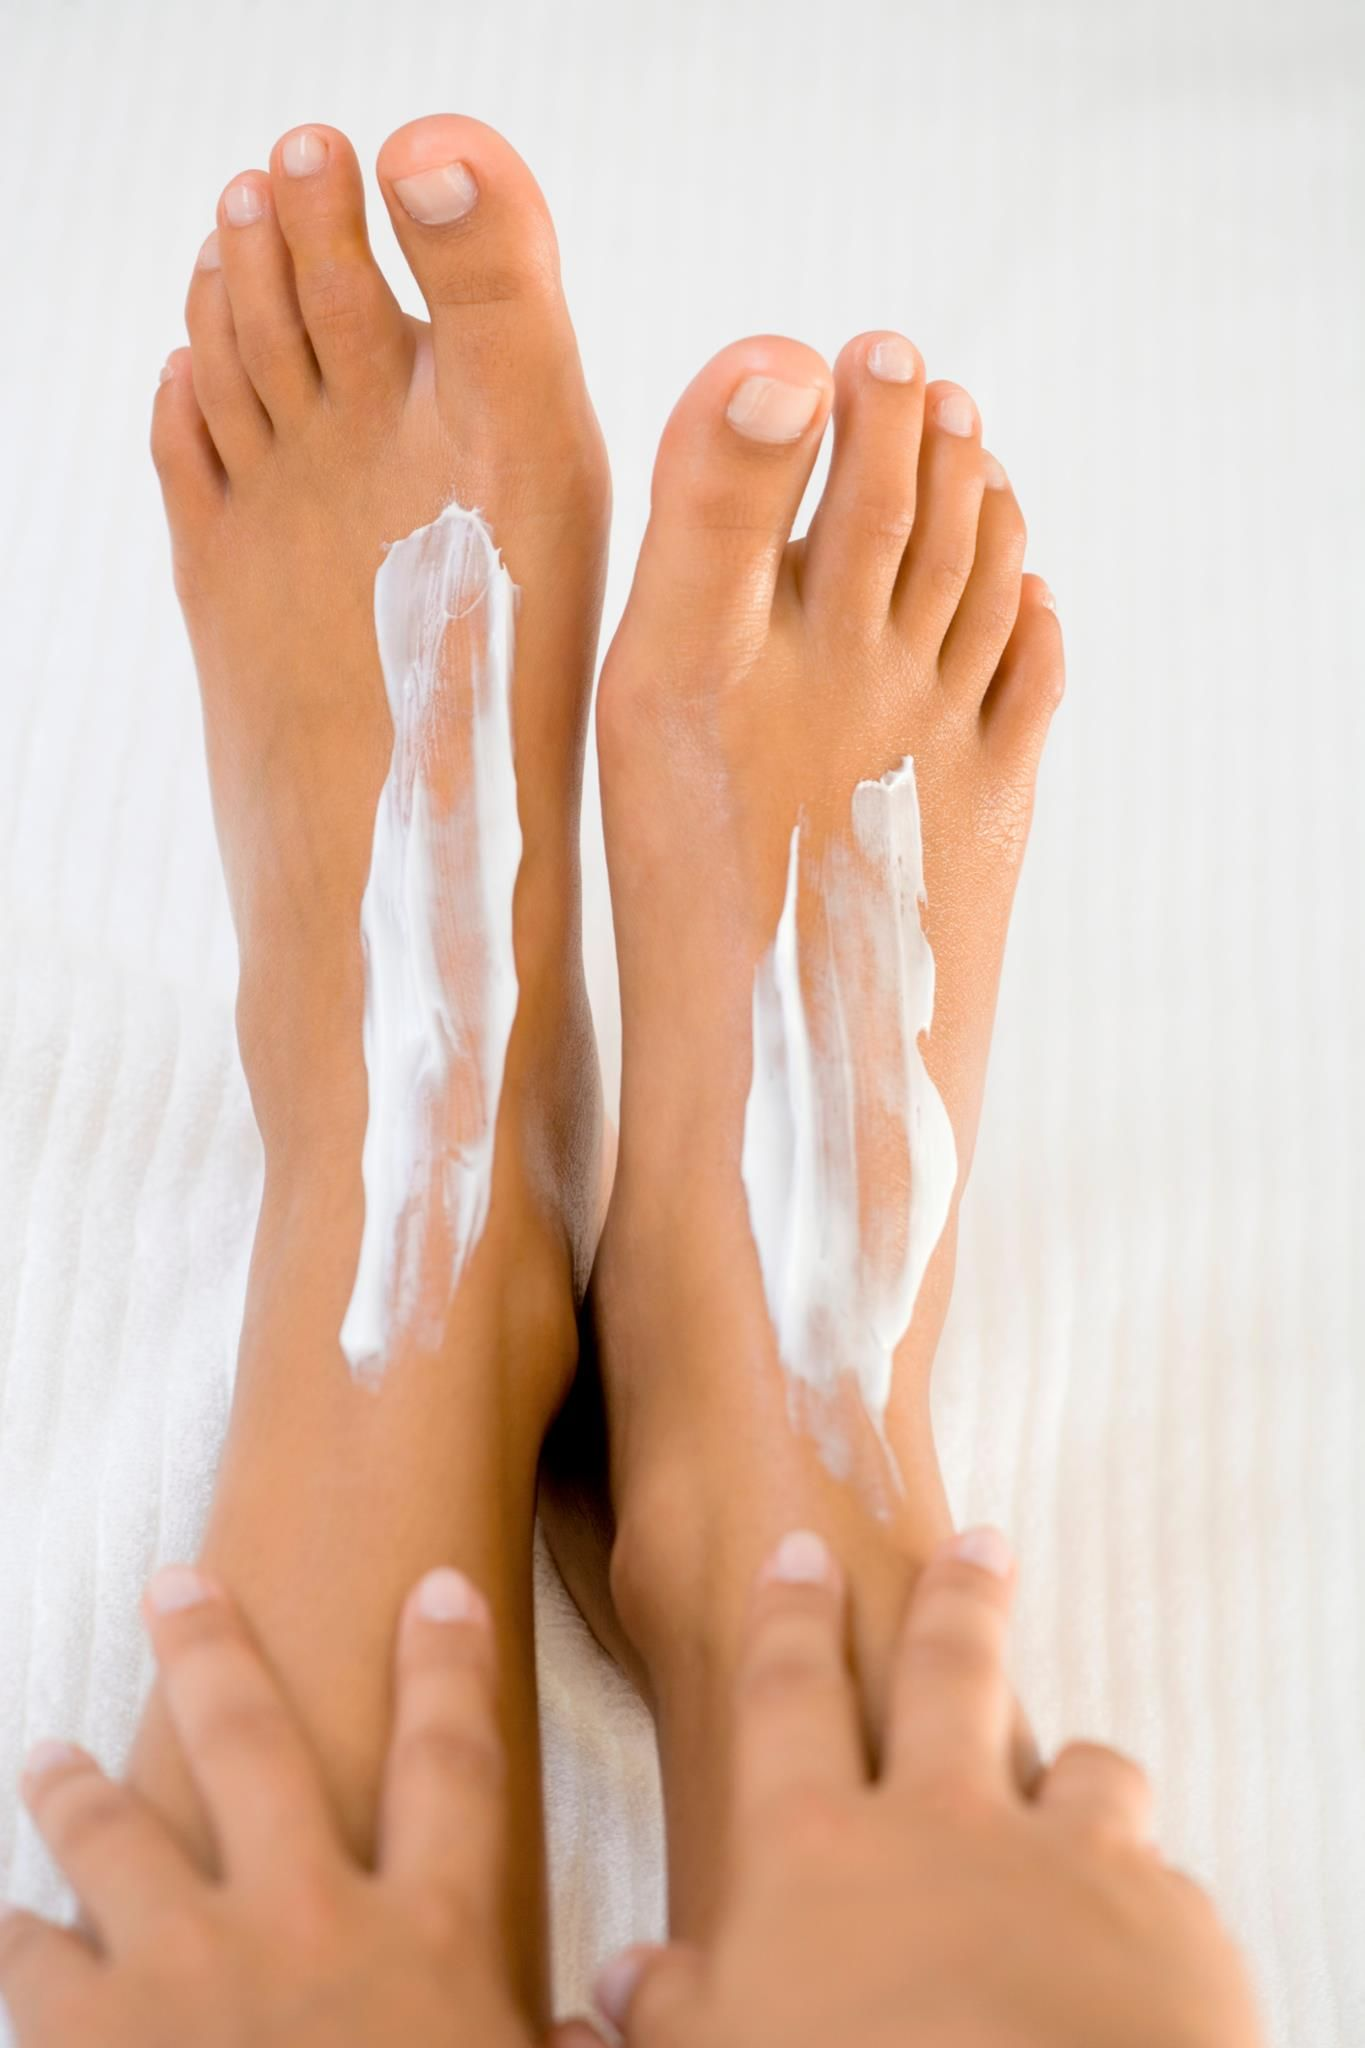 Basic Foot Care Guidelines #footcare | Beauty: Feet & Toenails ...